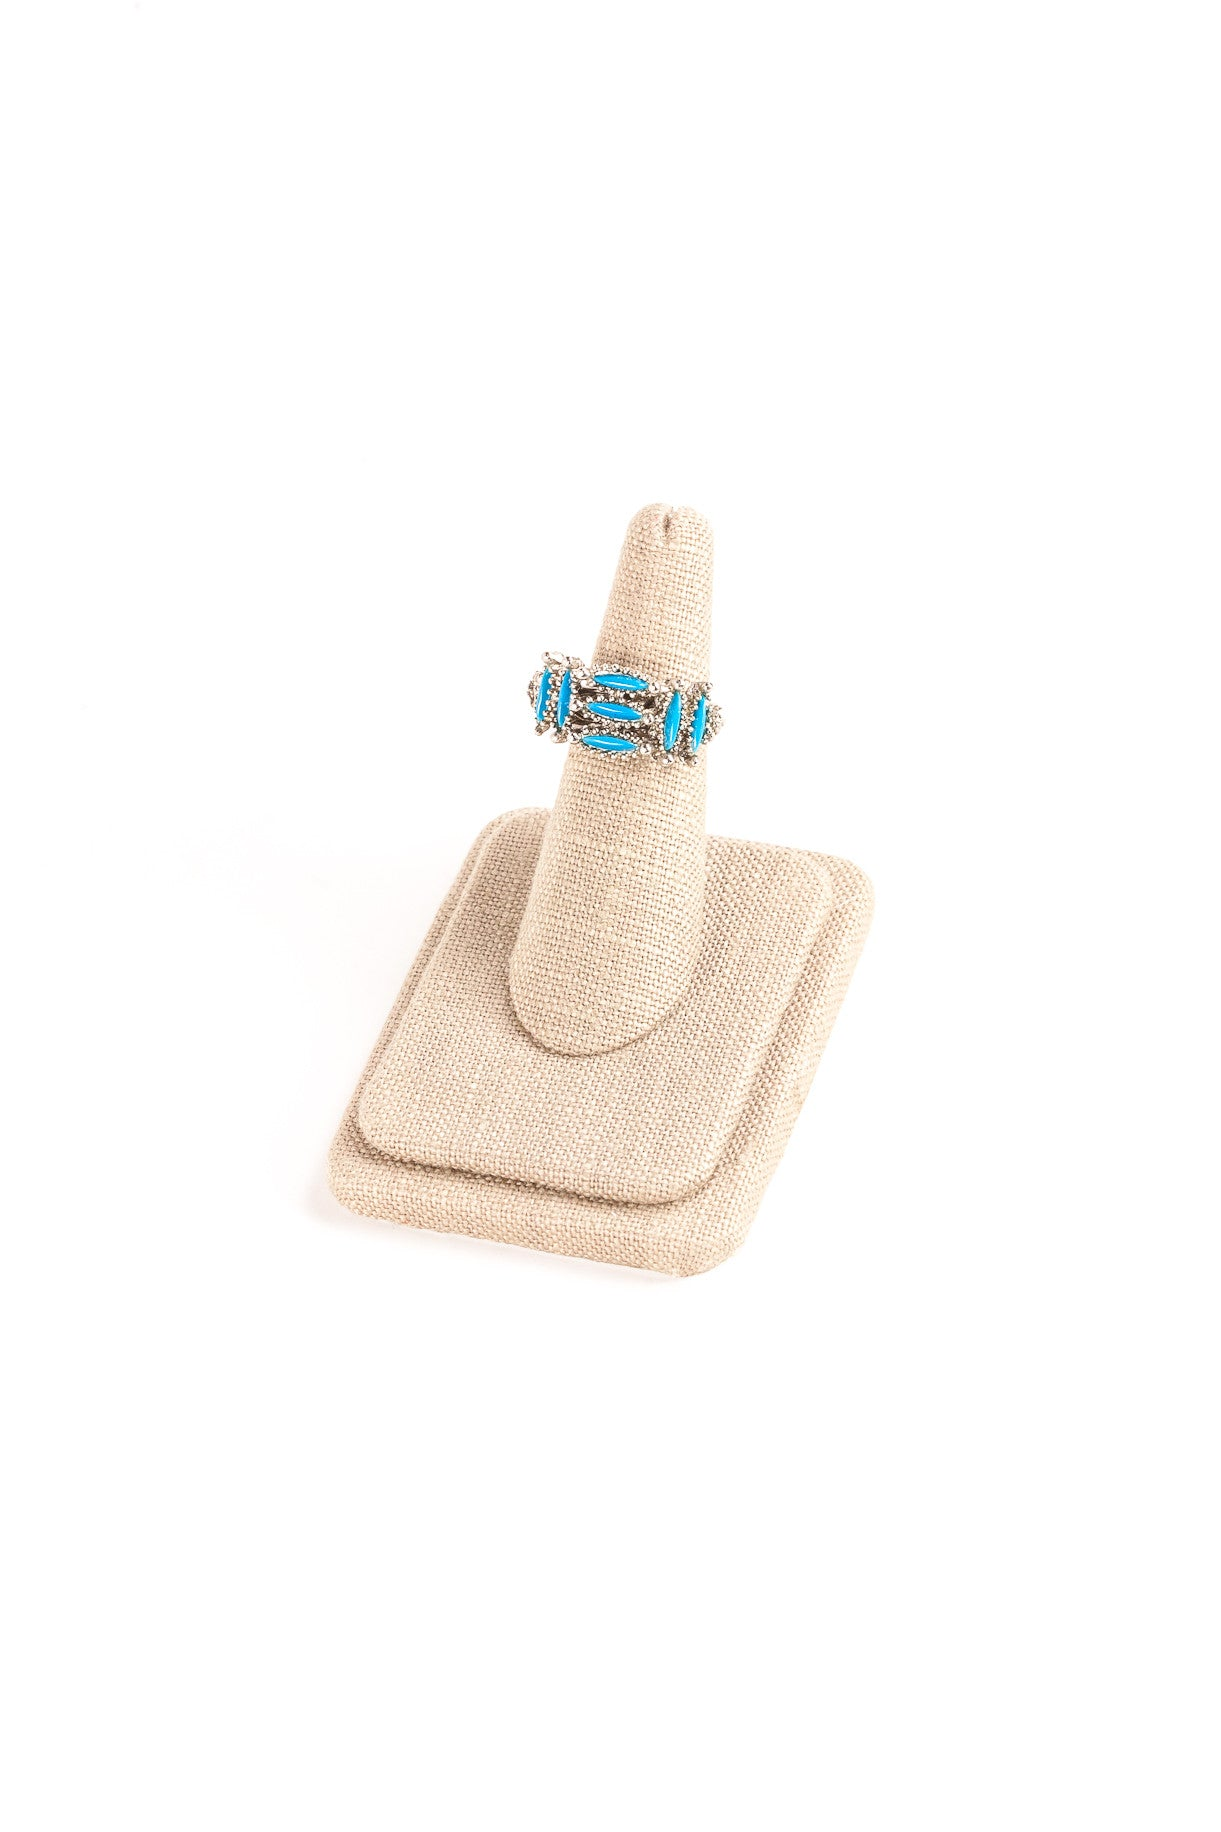 70's__Vintage__Turquoise Rectangles Ring